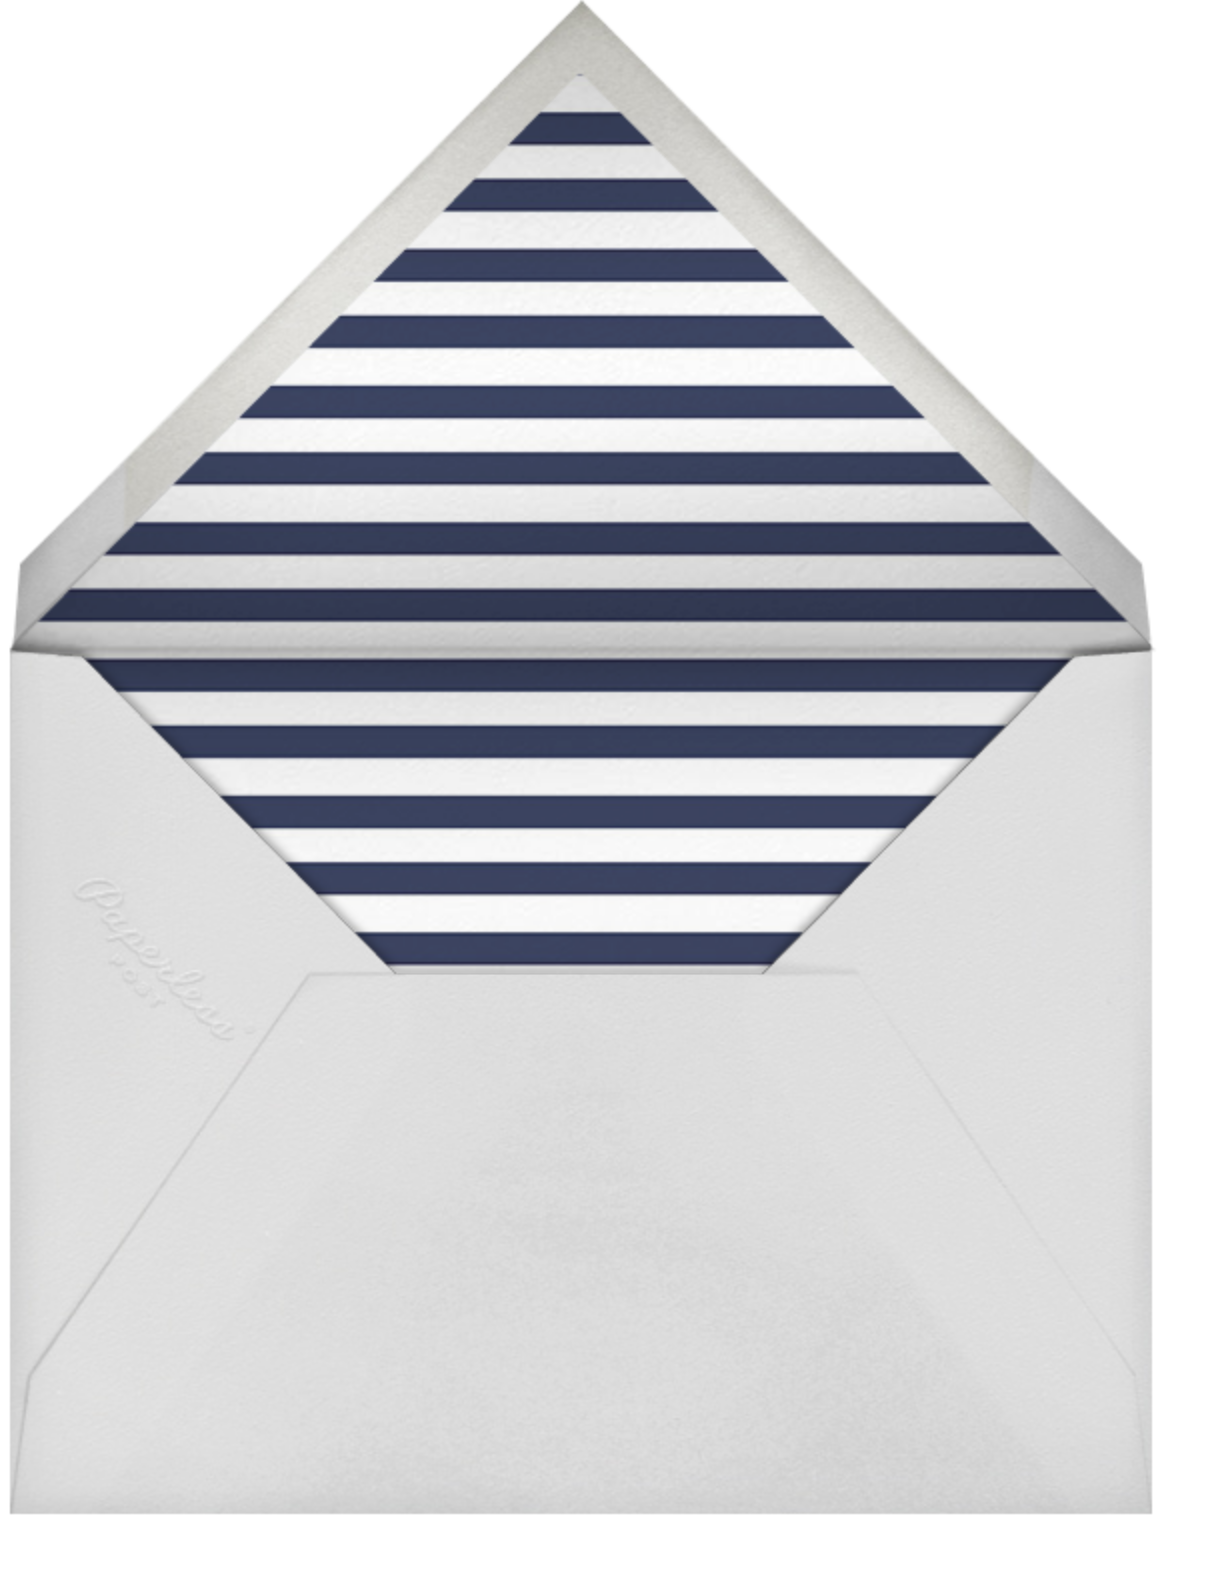 Confetti - Navy/Silver - kate spade new york - Cocktail party - envelope back